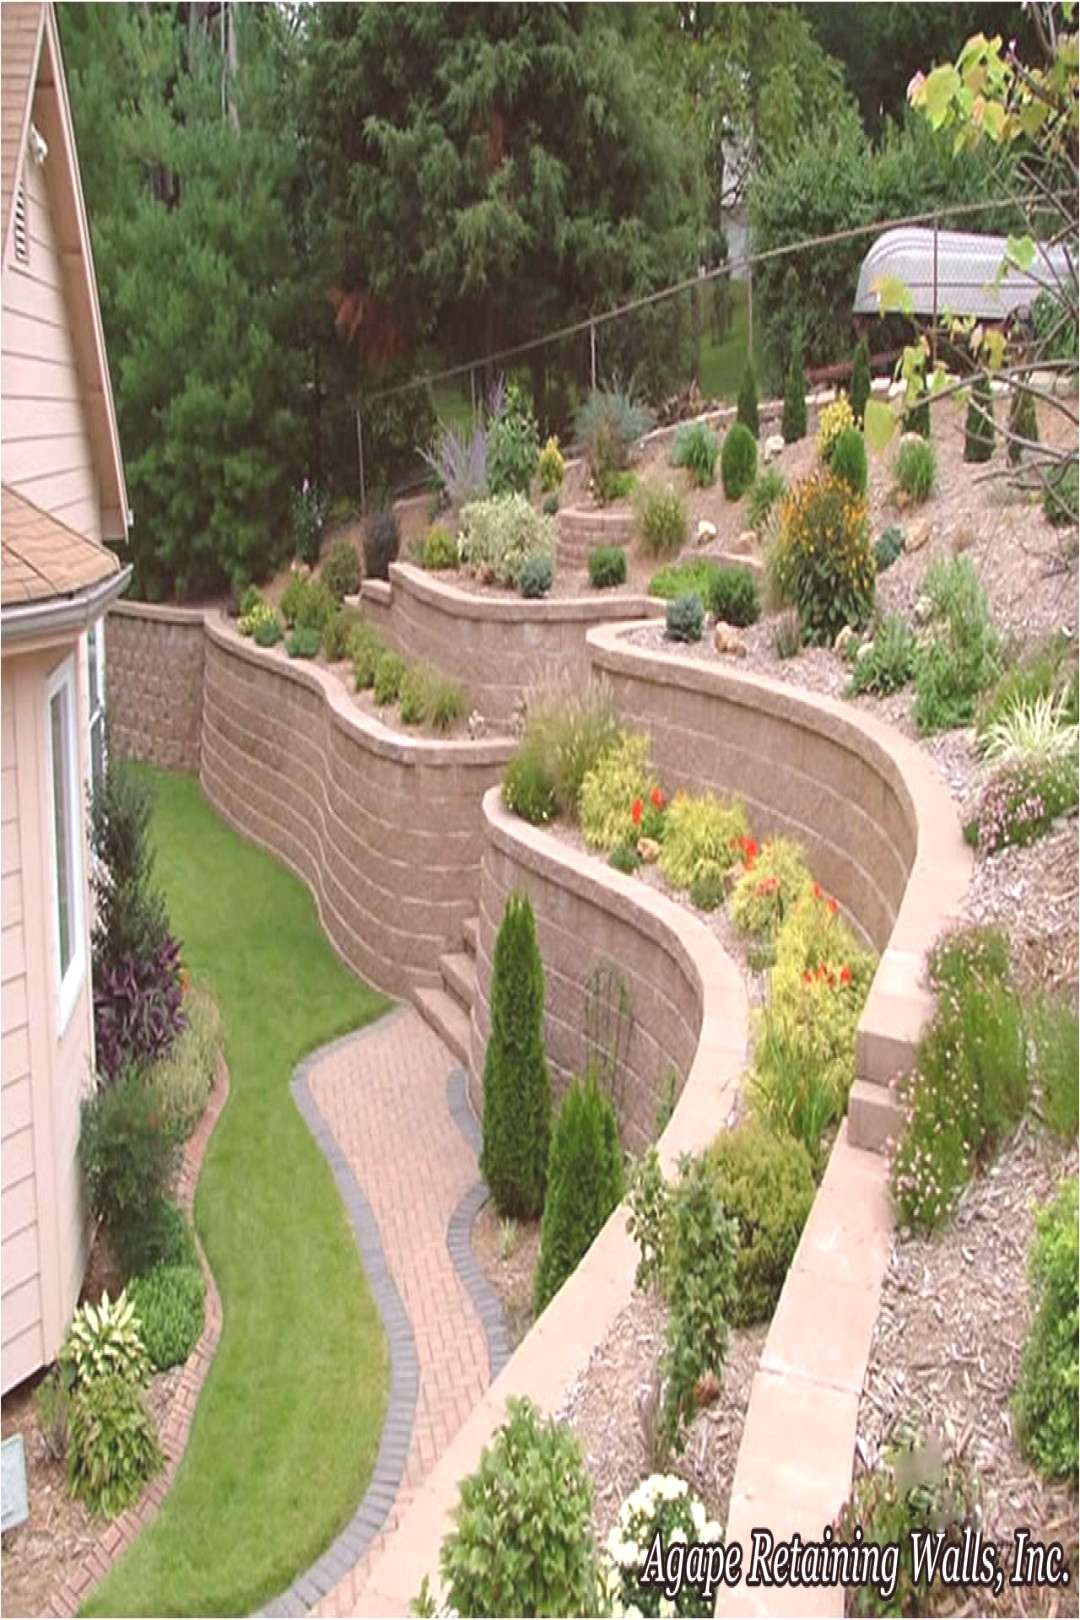 Agape Retaining Walls Inc Terrace Album 2 Agape Retaining Walls Inc Terrace Album 2 Nice 65 Garden